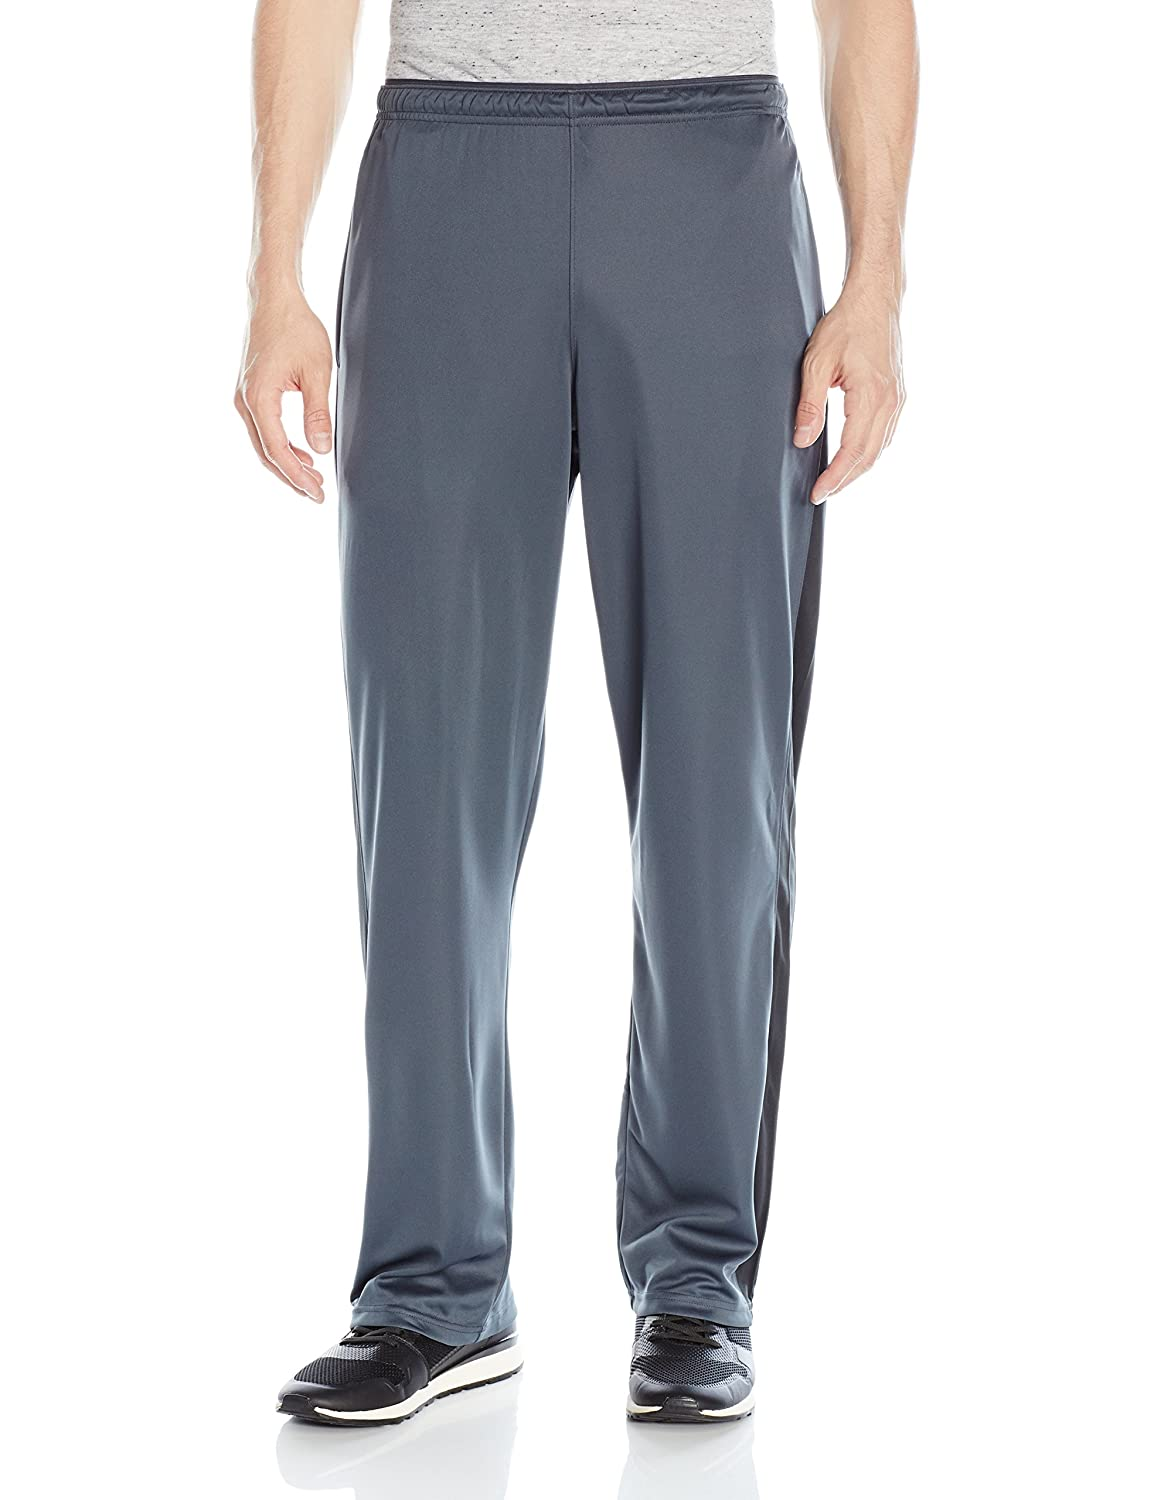 Hanes Sport Men's X-Temp Performance Training Pant with Pockets O5A08